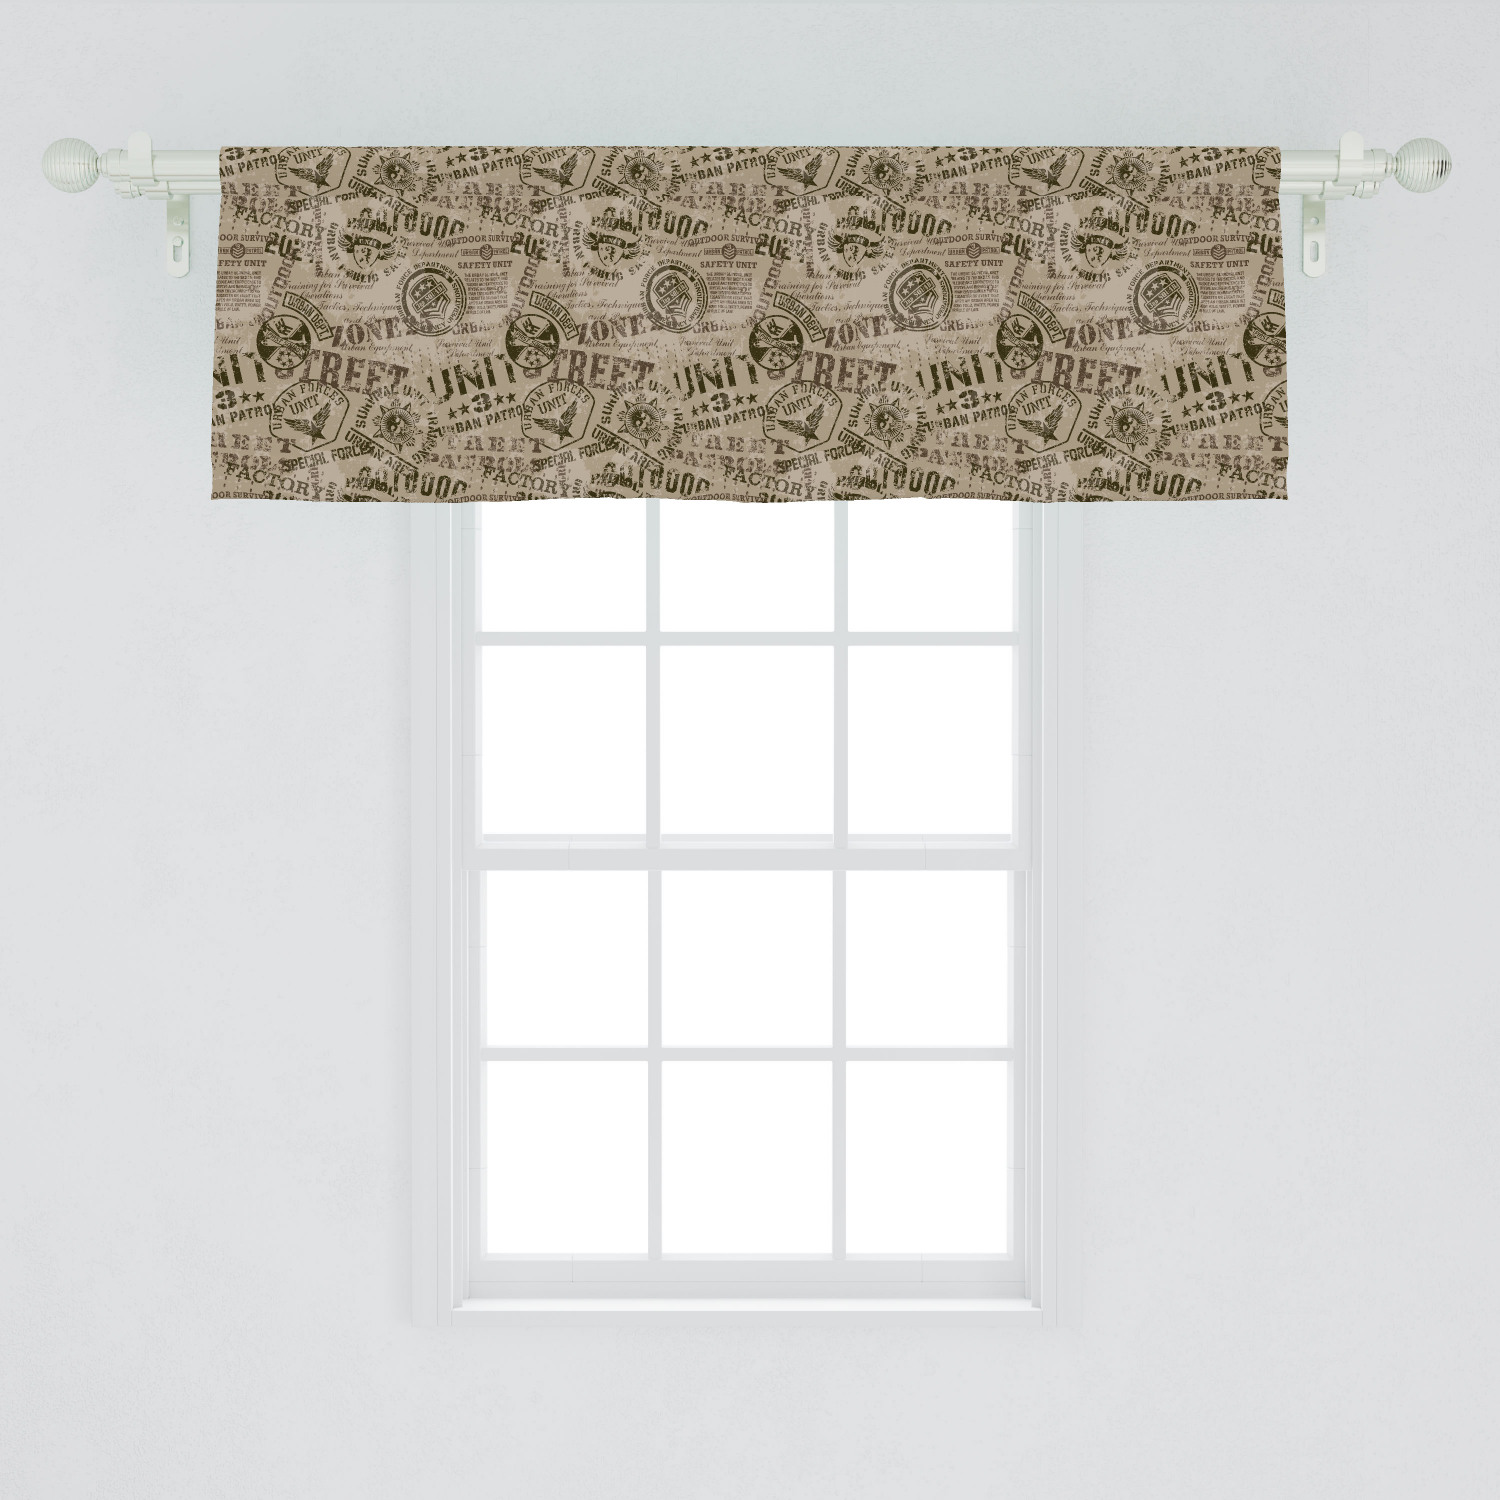 Grunge Window Valance Nostalgic Pins From Different Countries Uniform Style Graphic Design Pattern Curtain Valance For Kitchen Bedroom Decor With Rod Pocket By Ambesonne Walmart Com Walmart Com